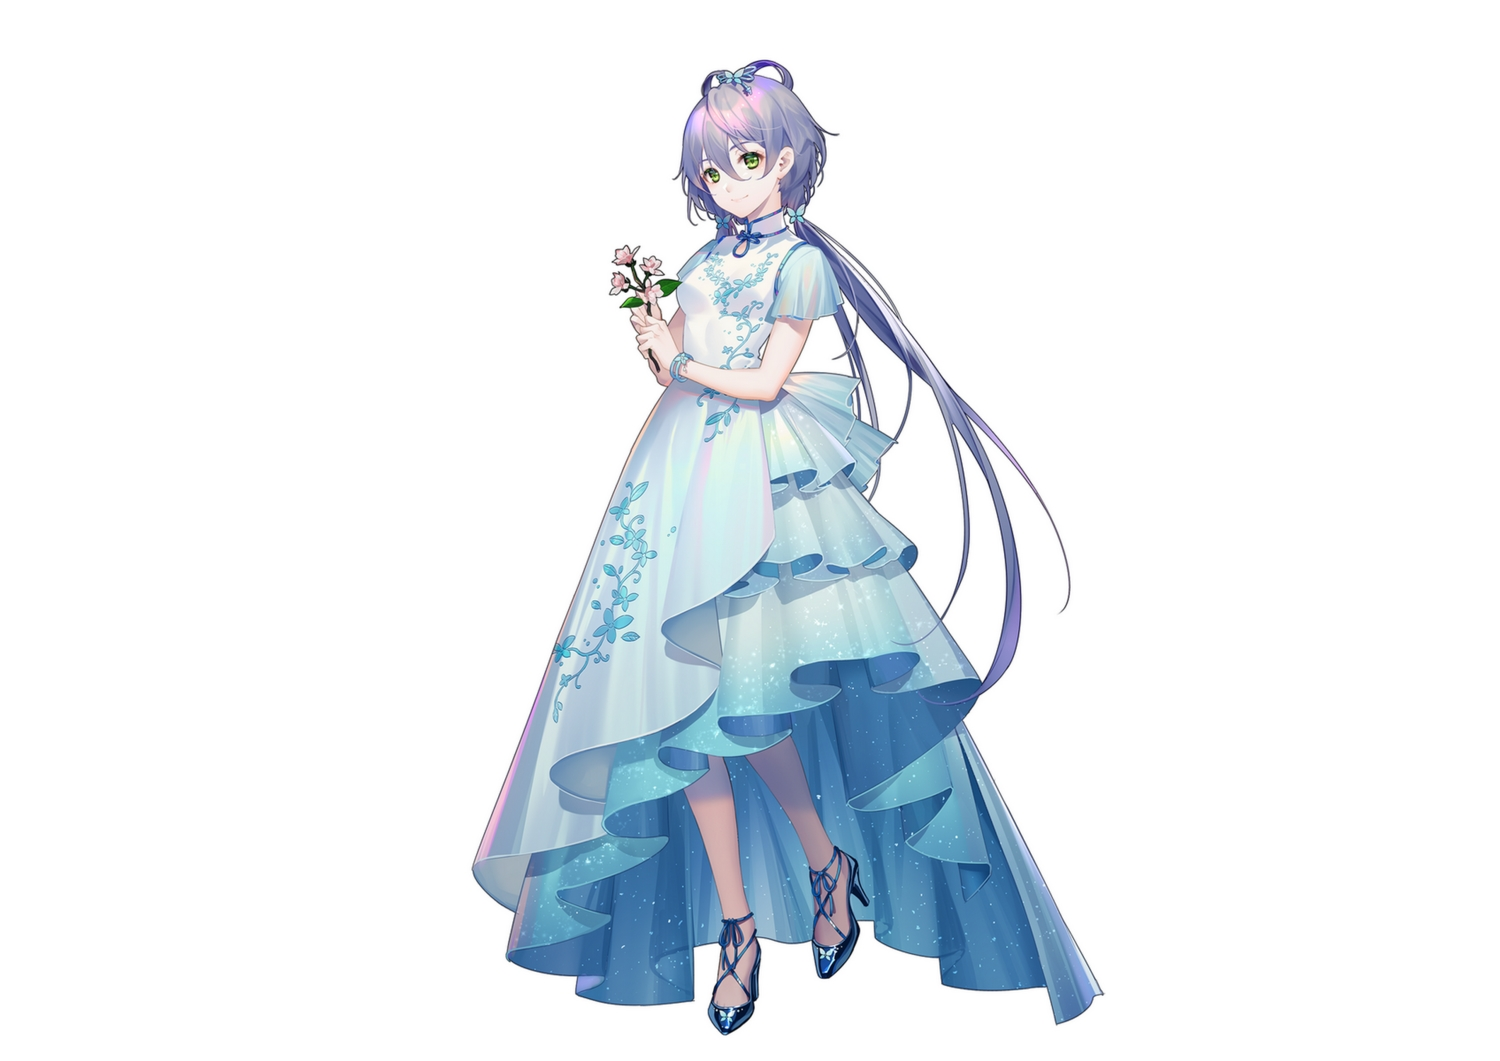 chinese_clothes chinese_dress dress flowers green_eyes long_hair luo_tianyi purple_hair tidsean twintails vocaloid vocaloid_china white wristwear